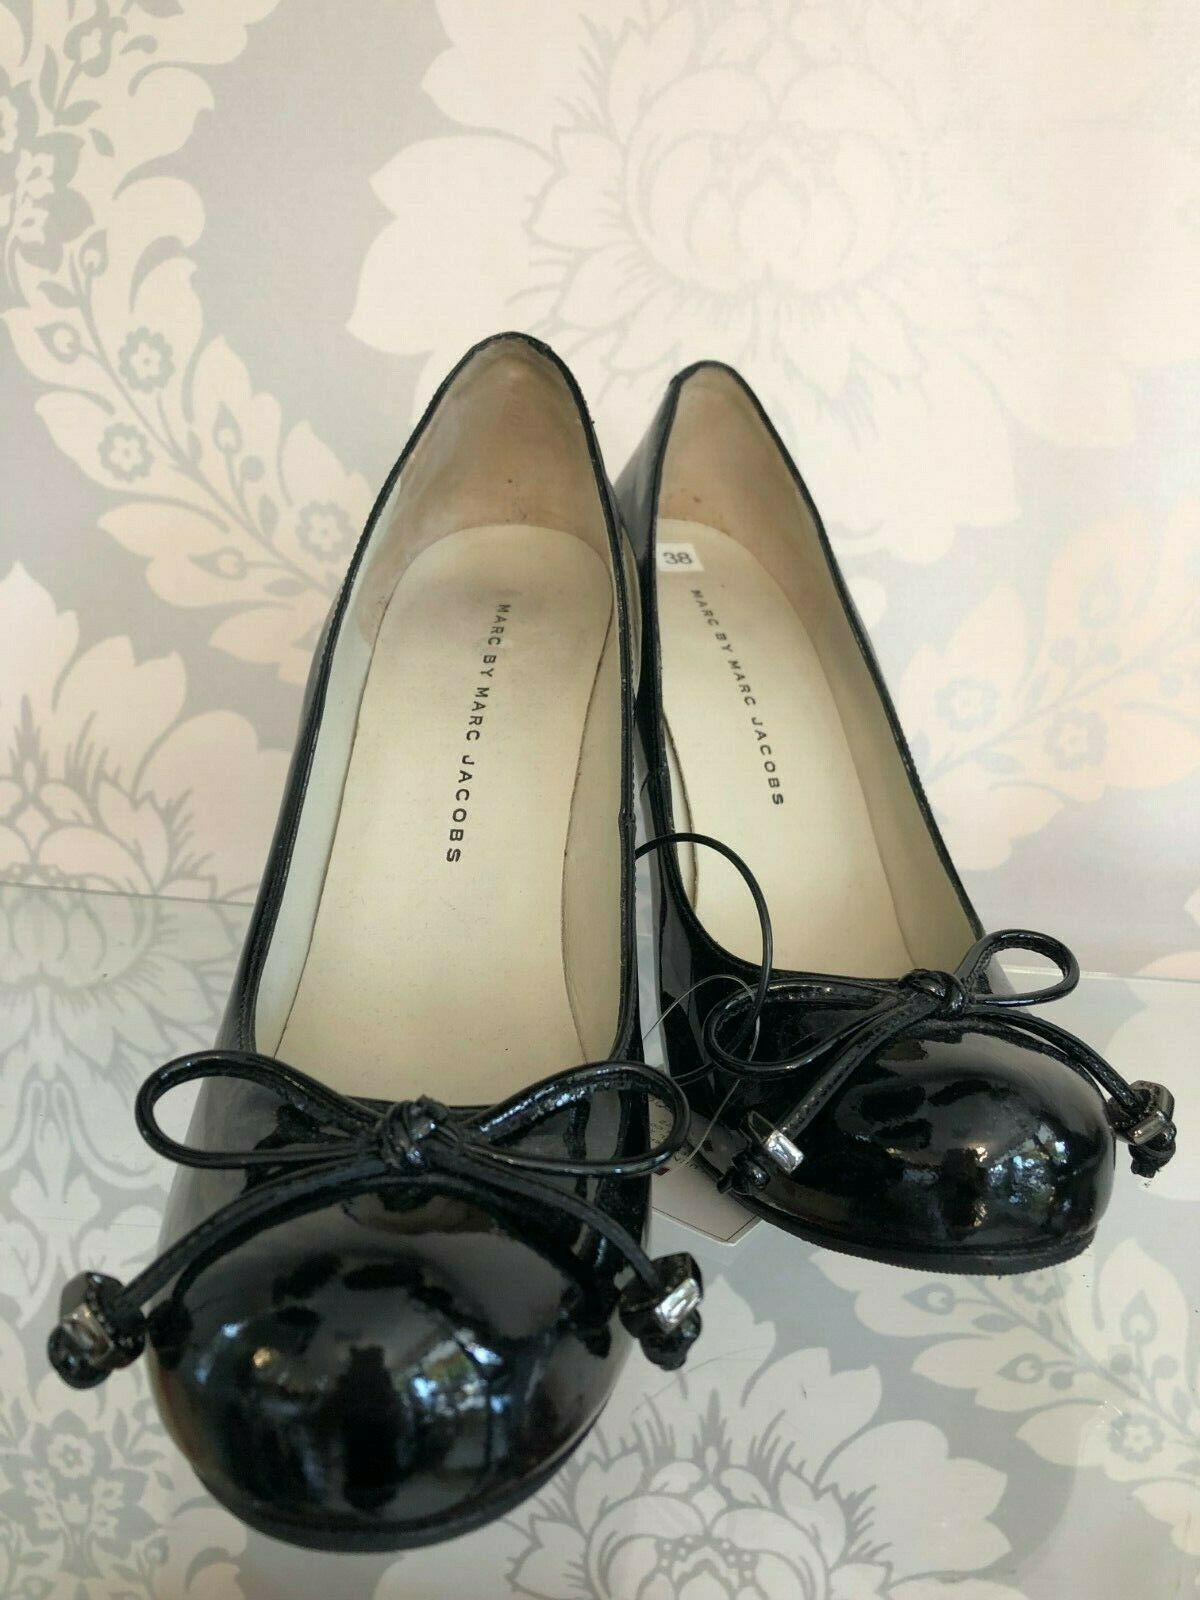 Primary image for MARC BY MARC JACOBS Black Patent Leather Pumps/Heels Sz 38/US 8 $275